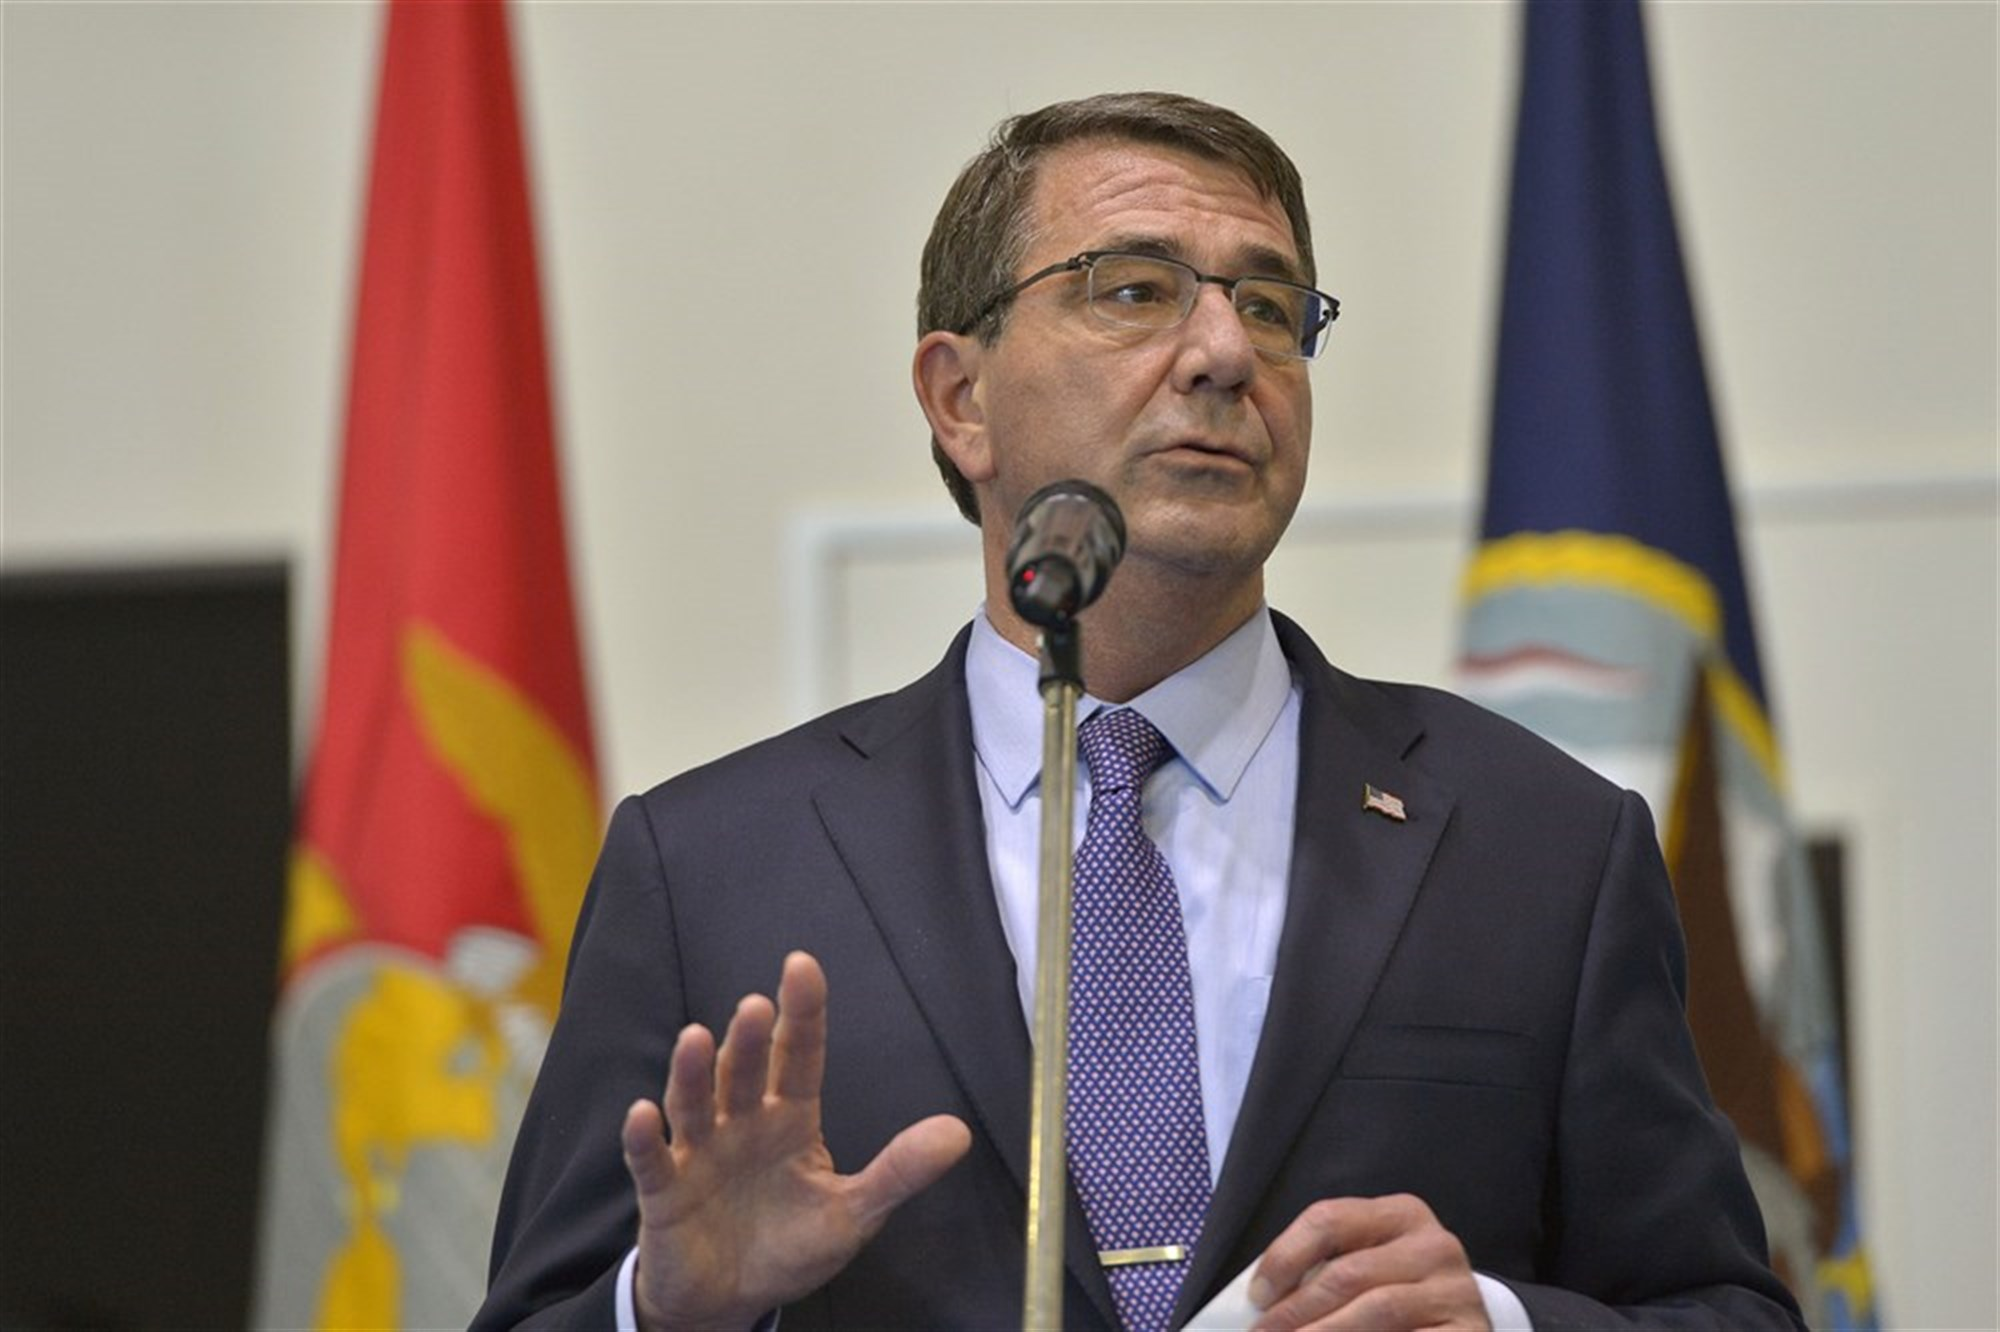 """We're in a counterterrorism pinch and that's no joke,"" U.S. Defense Secretary Ash Carter said during a visit to U.S. Africa Command in June. ""The evil of [Islamic State of Iraq and the Levant], narcotics, corruption, organized crime … are rife in Africa and ultimately they will come home to roost if we don't combat it there, and that's what you're doing so ably."" DoD photo by Glenn Fawcett"